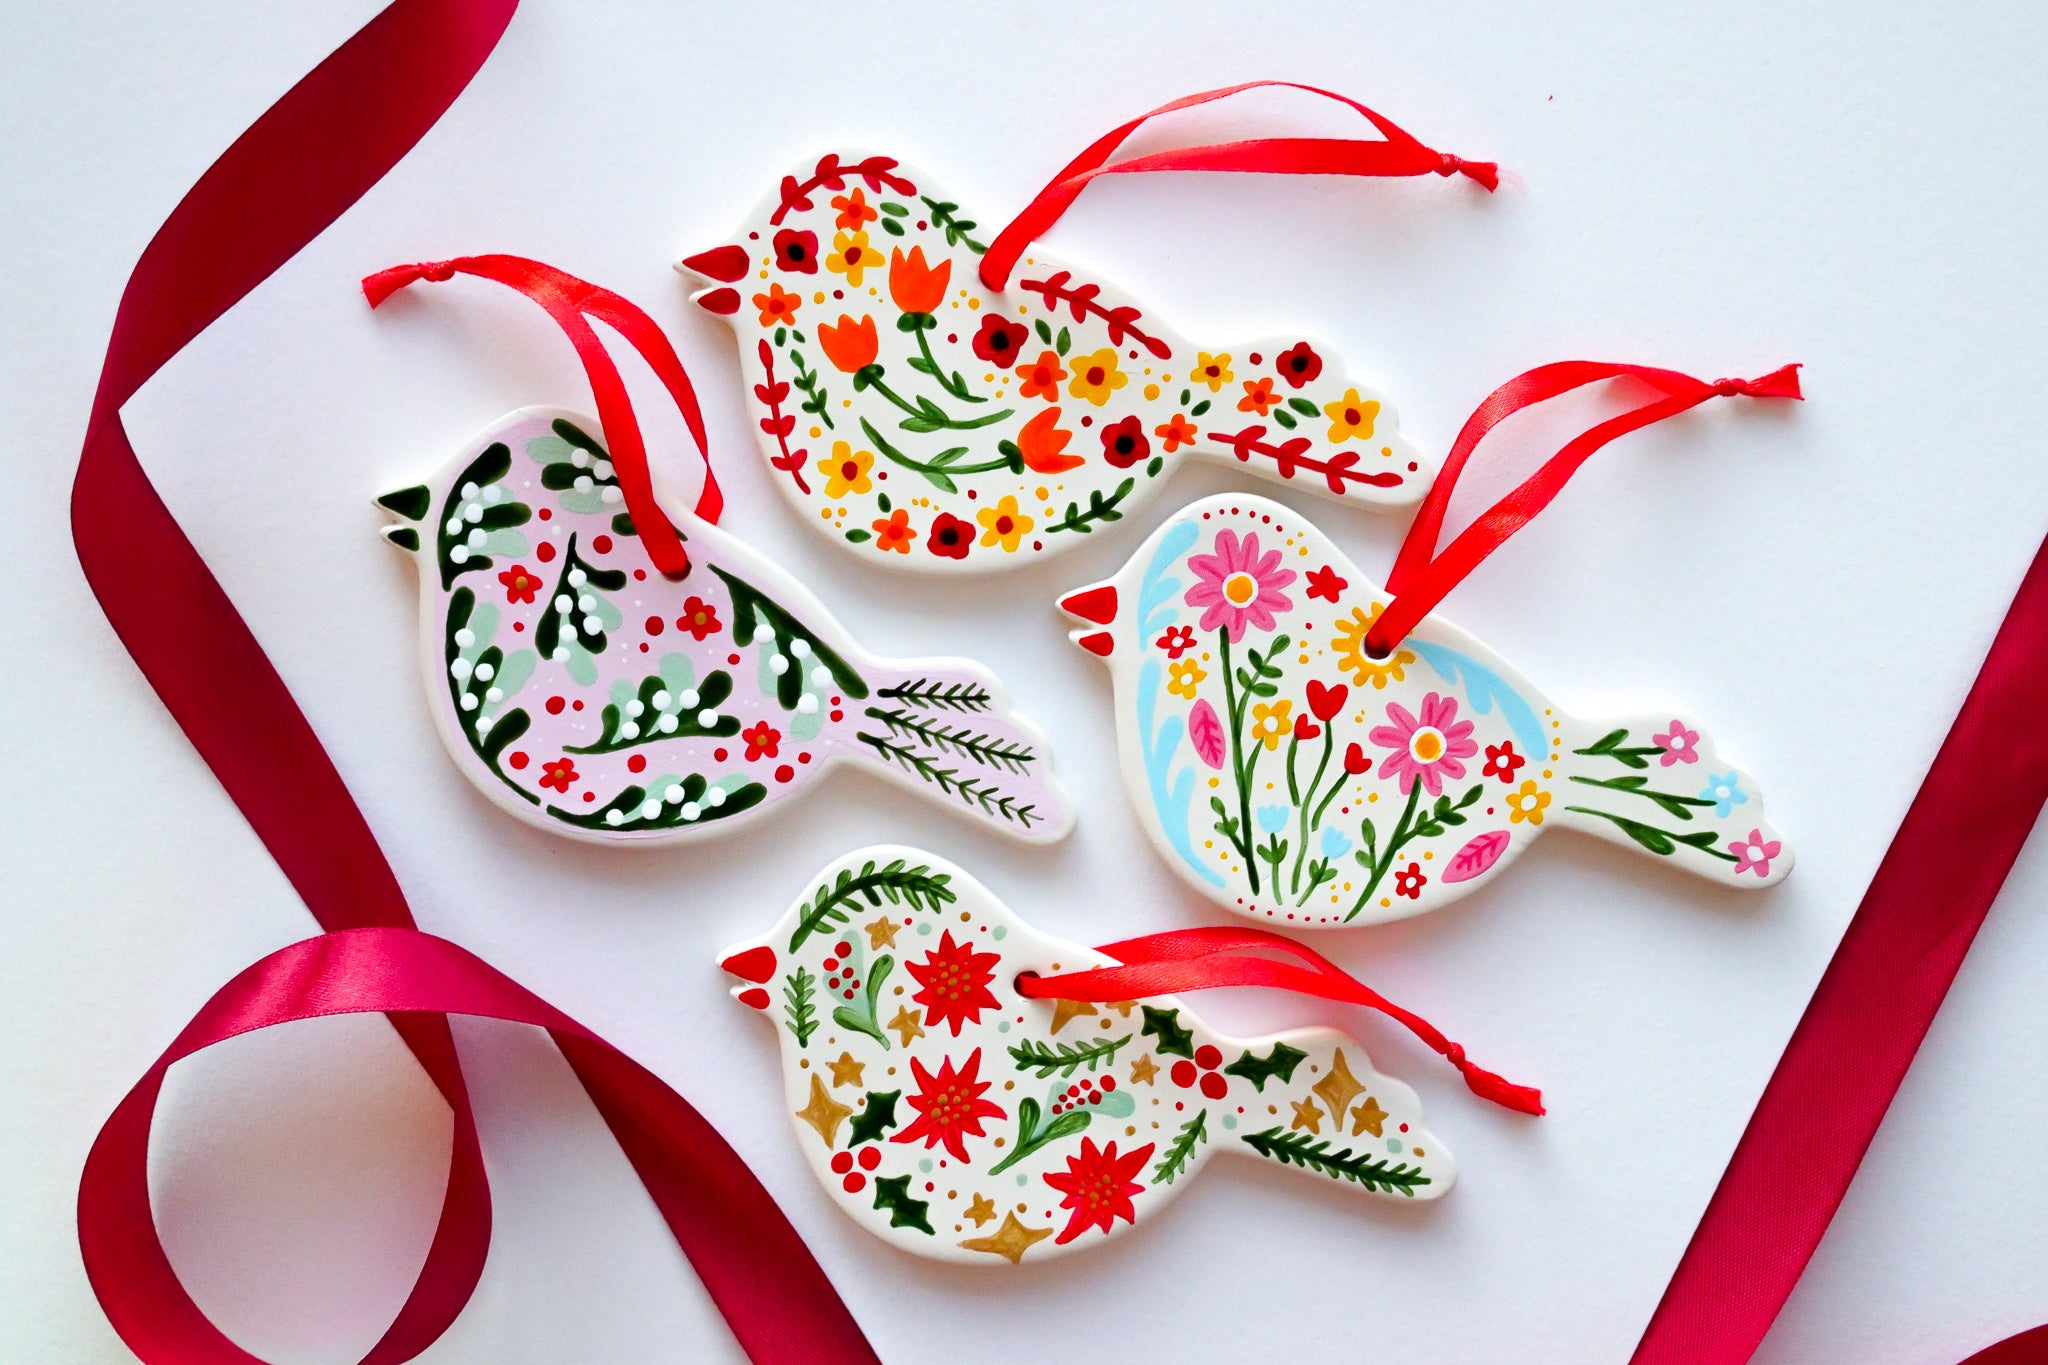 Ceramic Bird Christmas Decorations painted in floral print HUTCH London